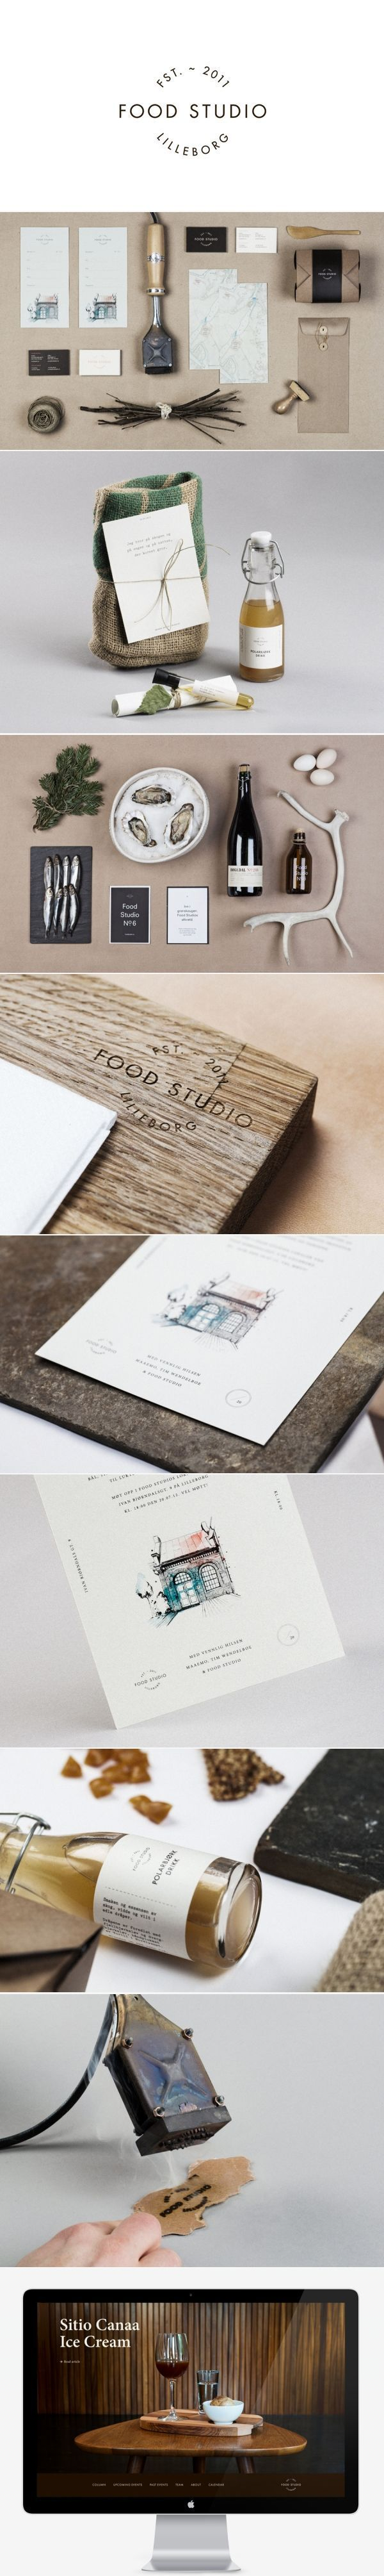 Unique Branding Design, Food Studio #Branding #Design (http://www.pinterest.com/aldenchong/)